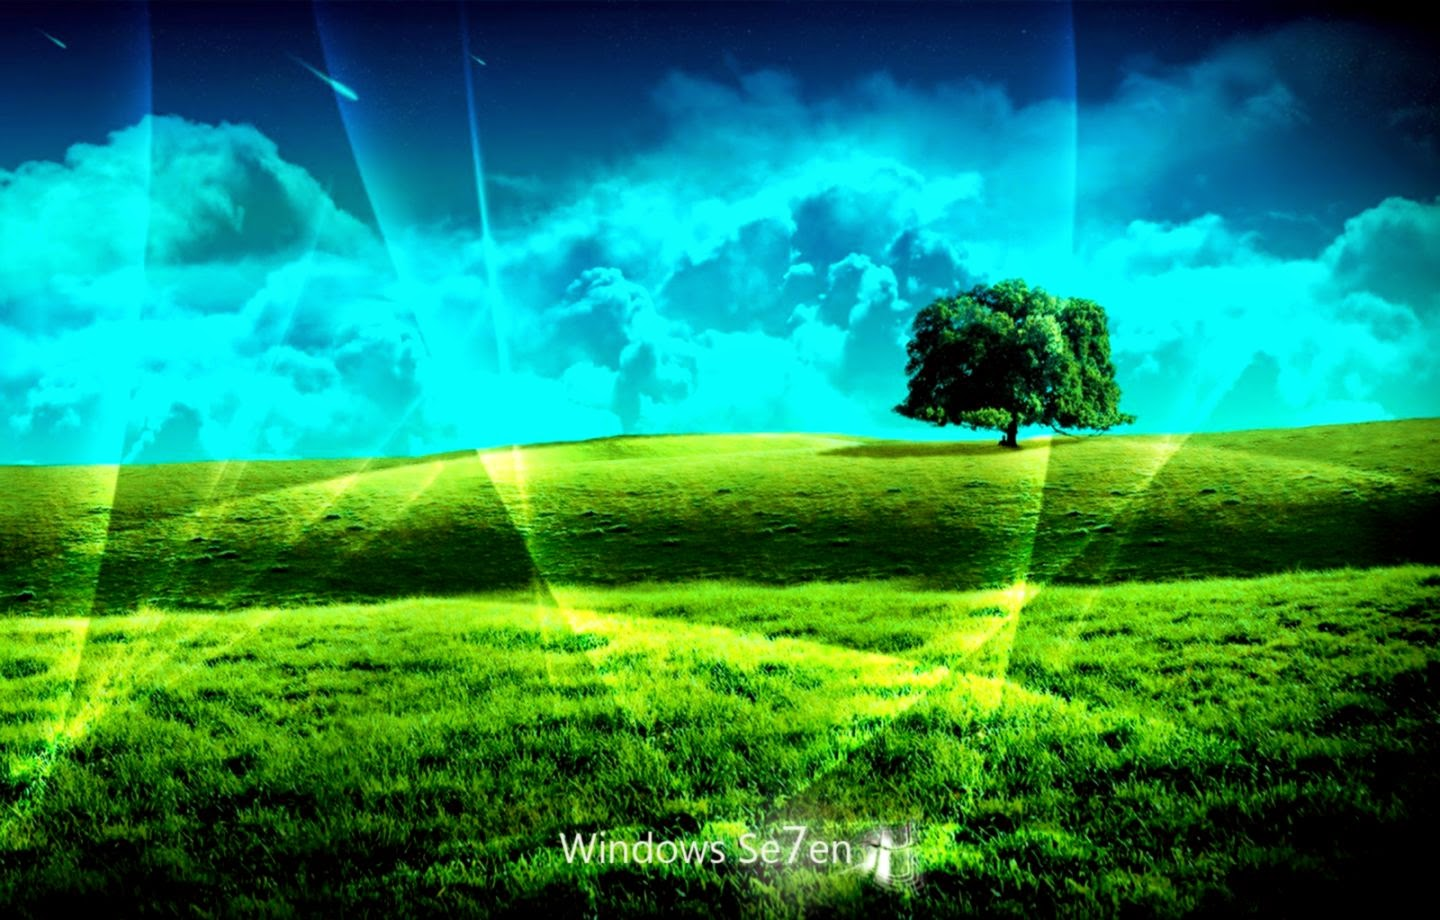 Free Animated Desktop Background Windows 7  Wallpapers 2014